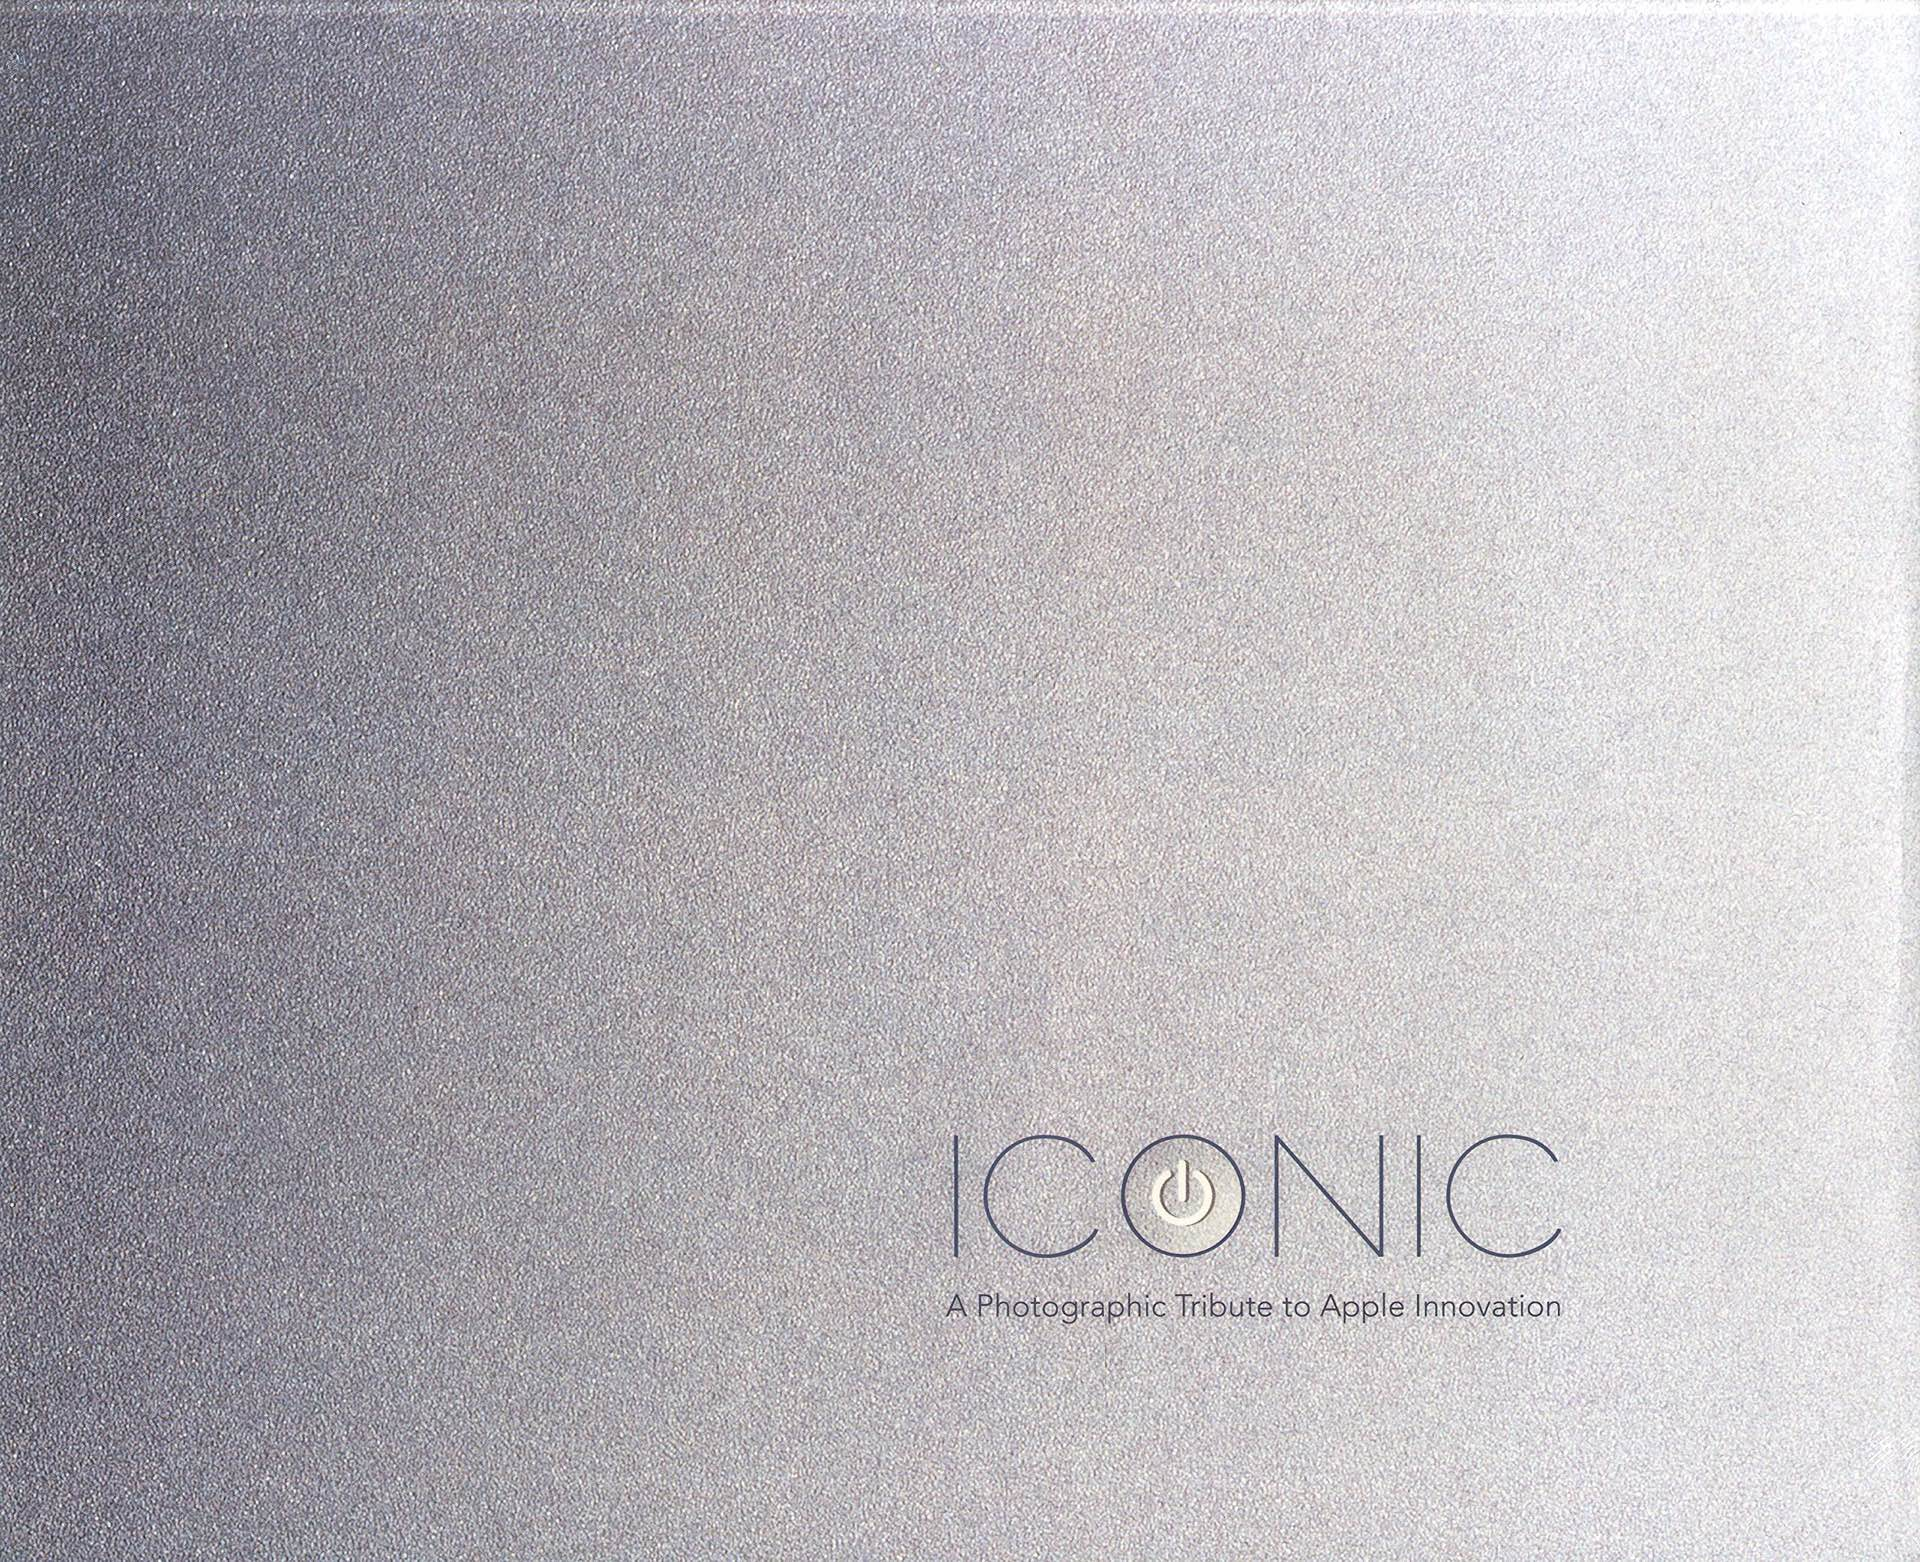 Iconic by Jonathan Zufi